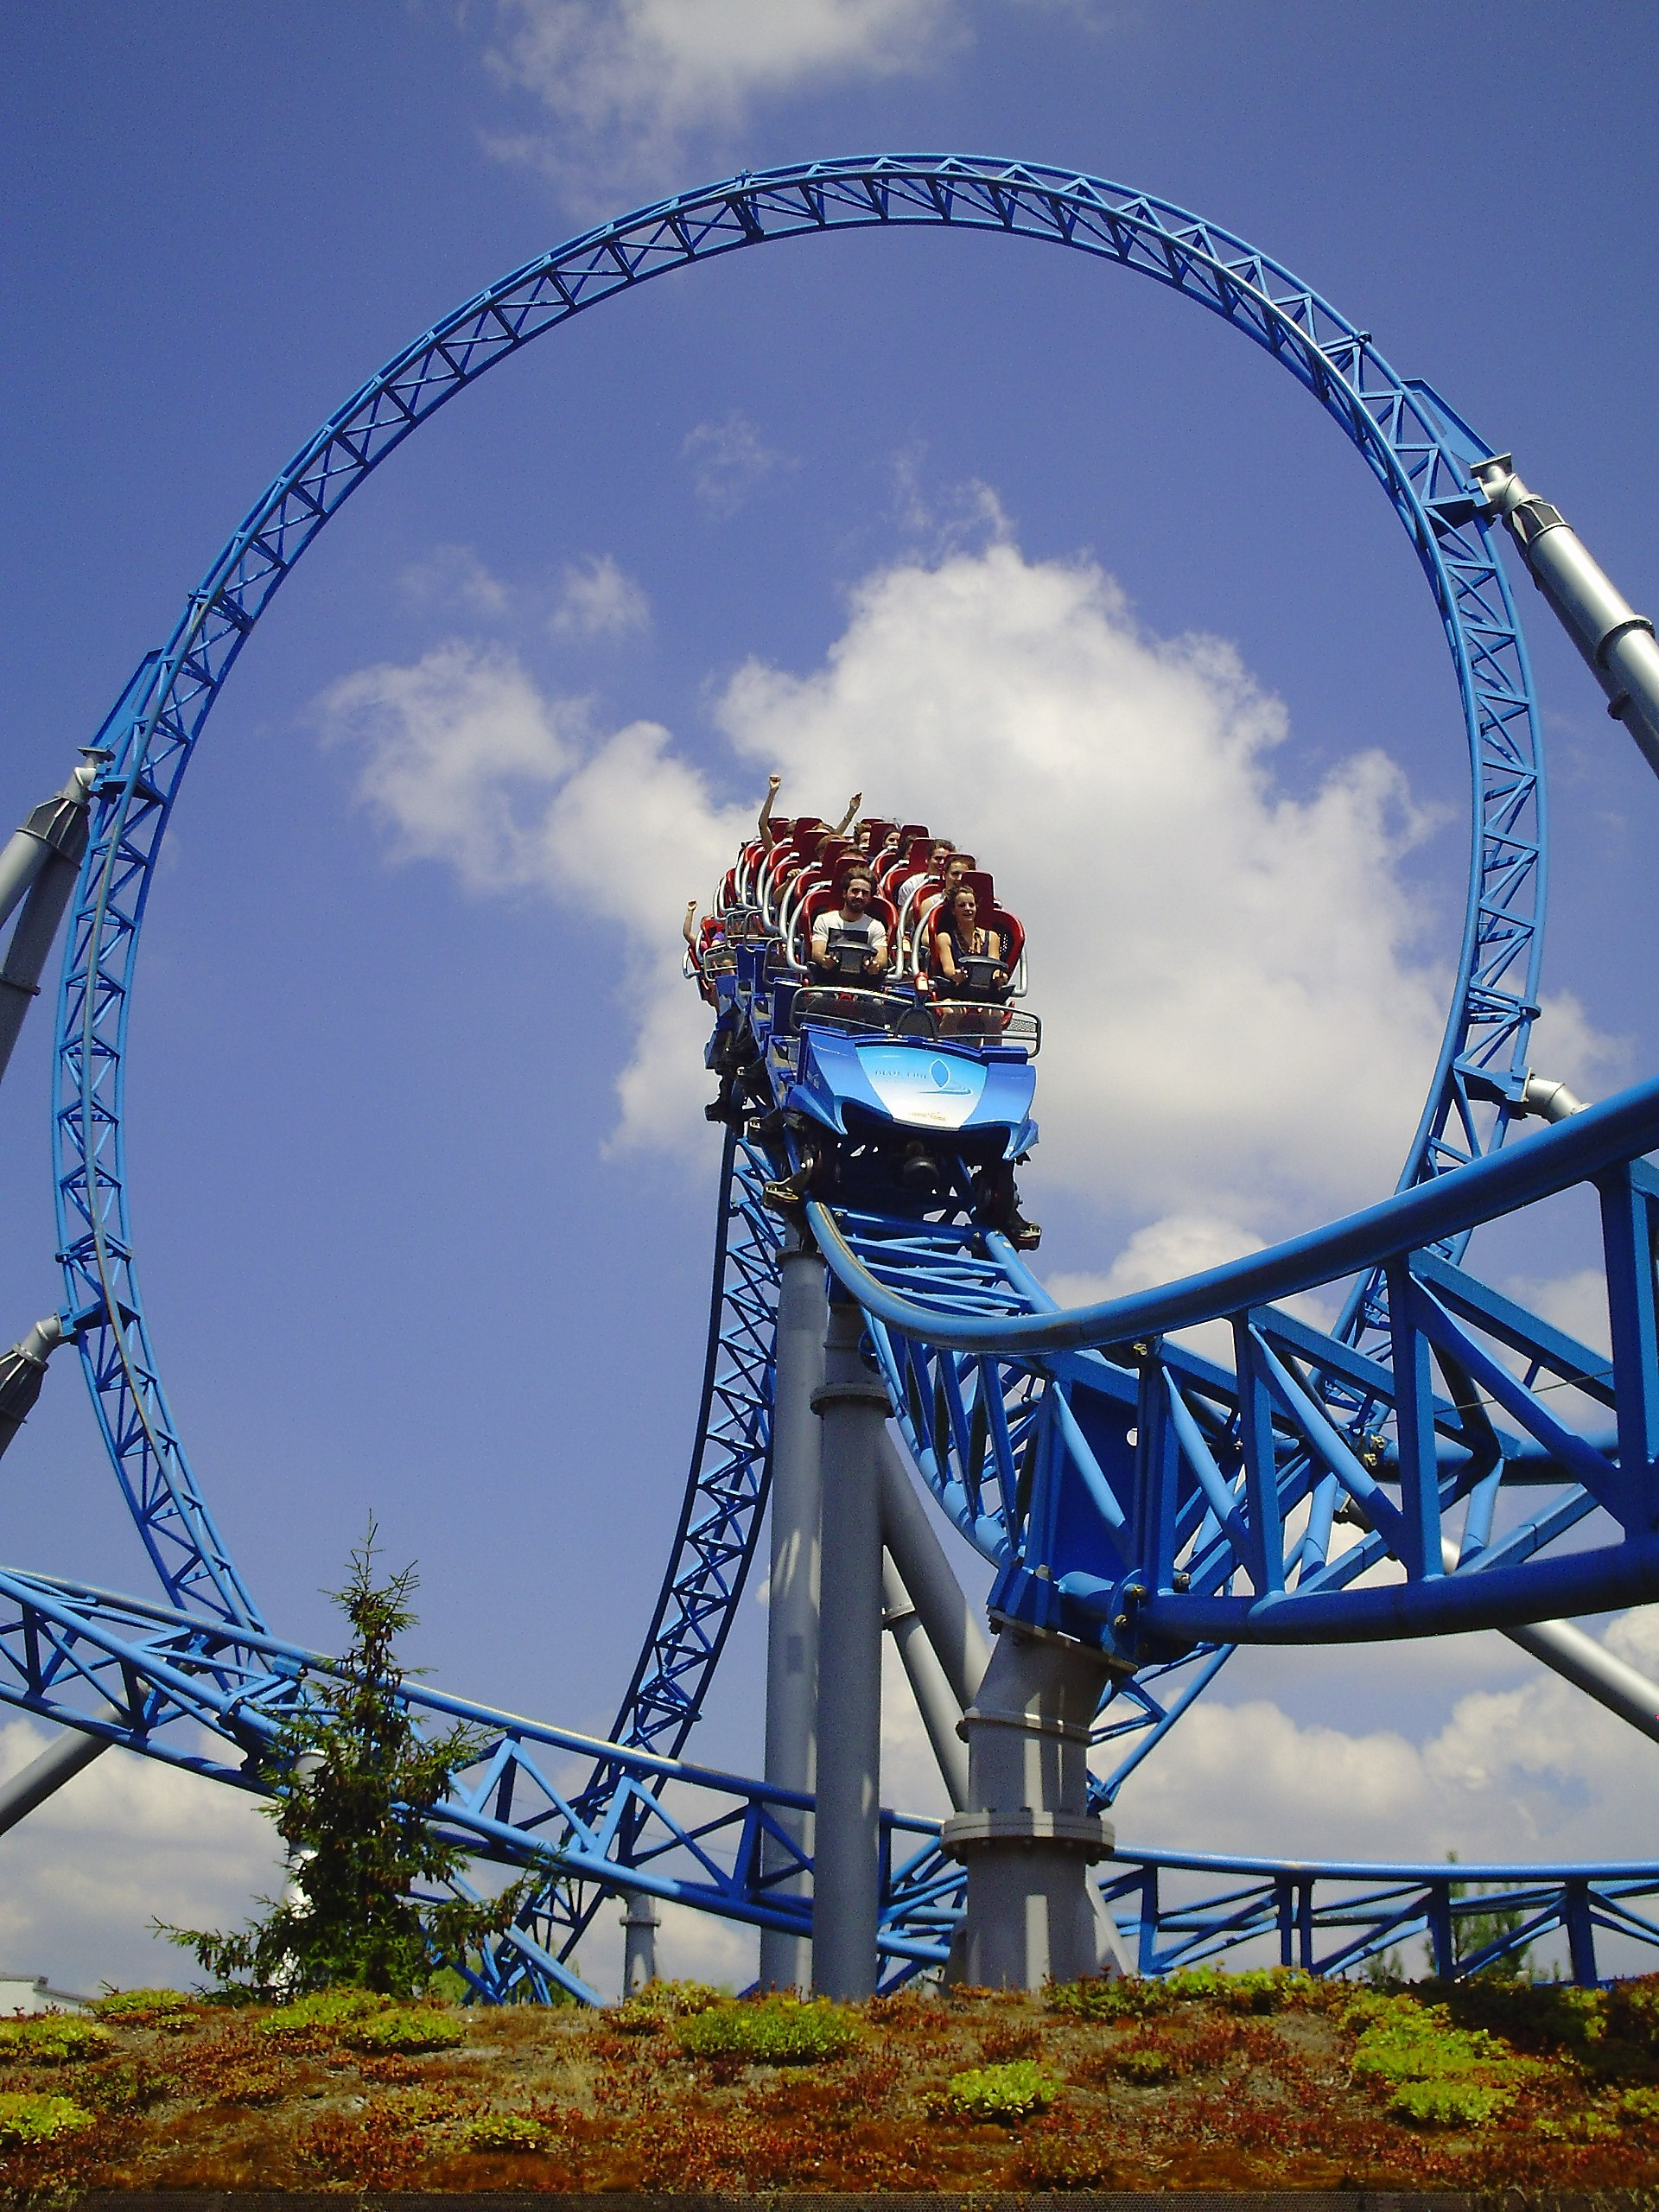 Launched roller coaster wikipedia for Linear induction motor roller coaster